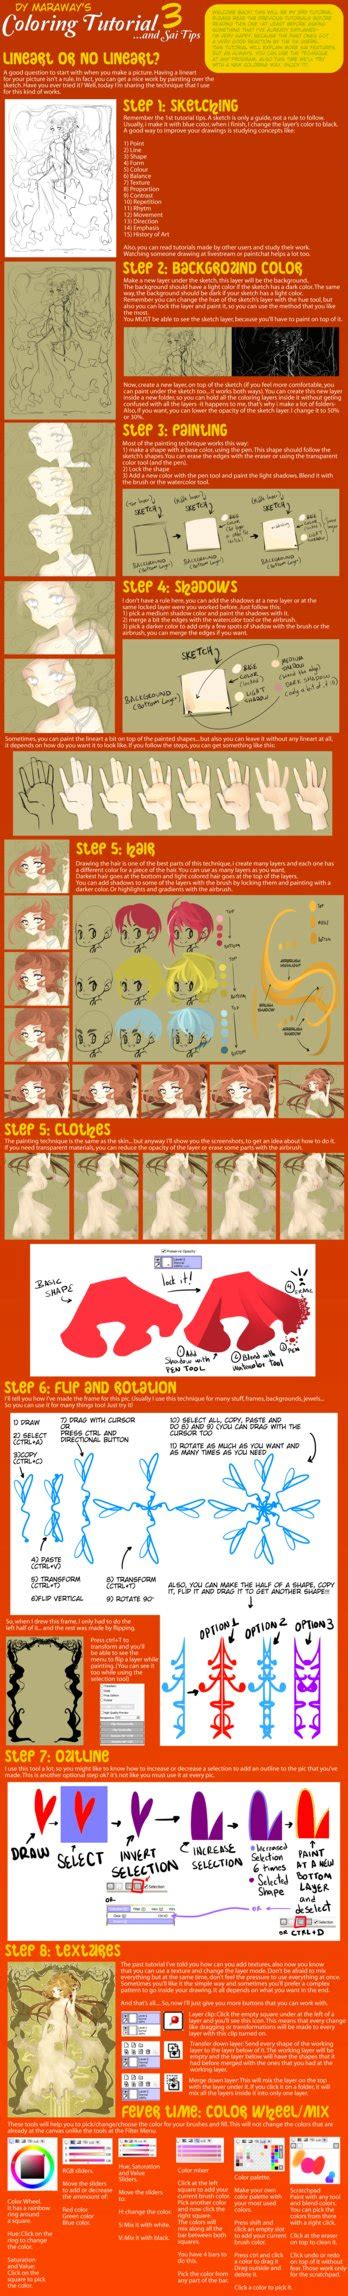 Coloring Tutorial Sai by Coloring Tutorial And Sai Tips 3 By Dymaraway On Deviantart